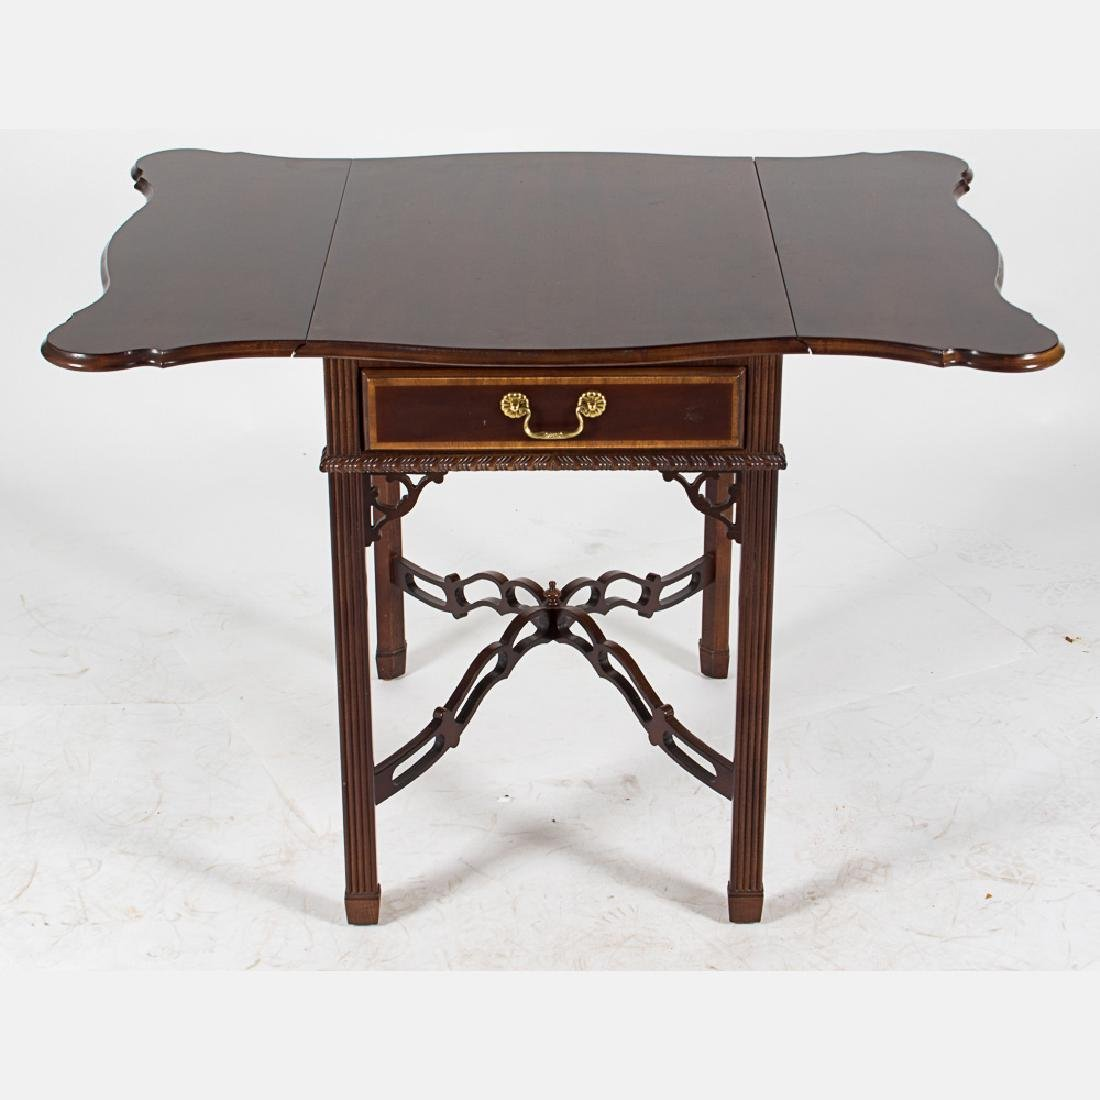 A Chippendale Style Mahogany Pembroke Table with Single - 4